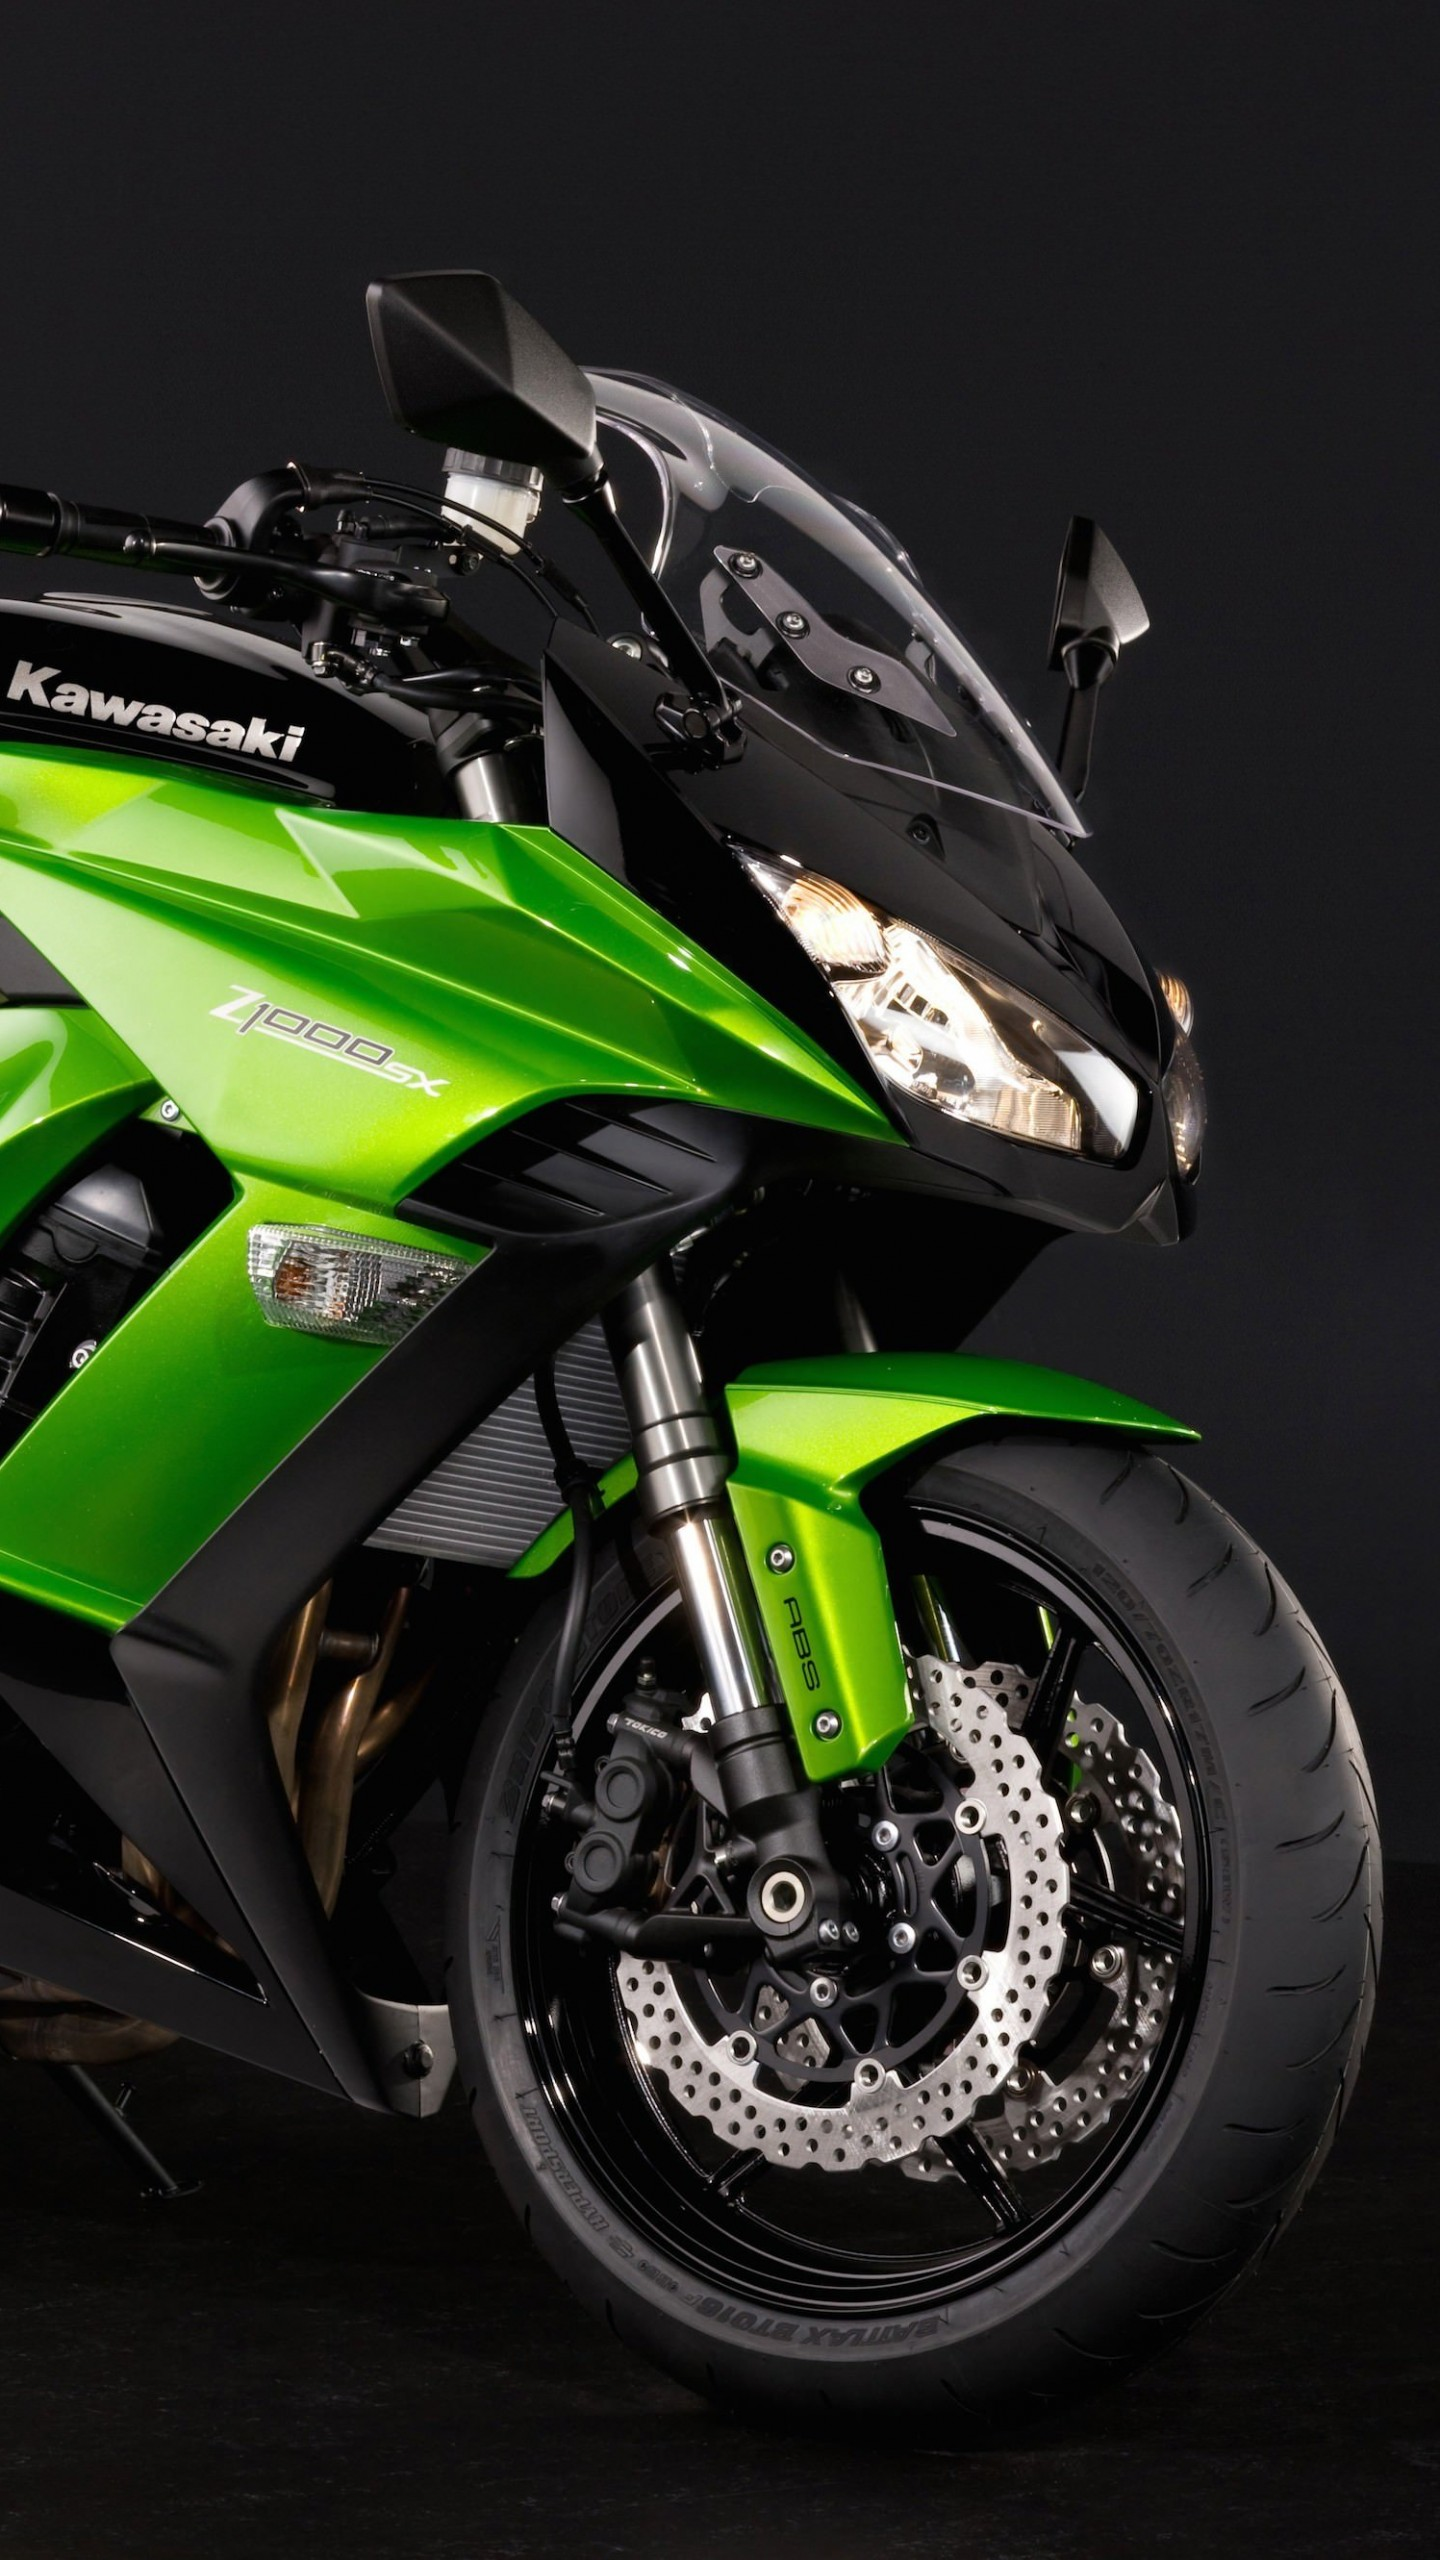 Kawasaki Kawasaki Z1000SX Wallpaper for SAMSUNG Galaxy Note 4